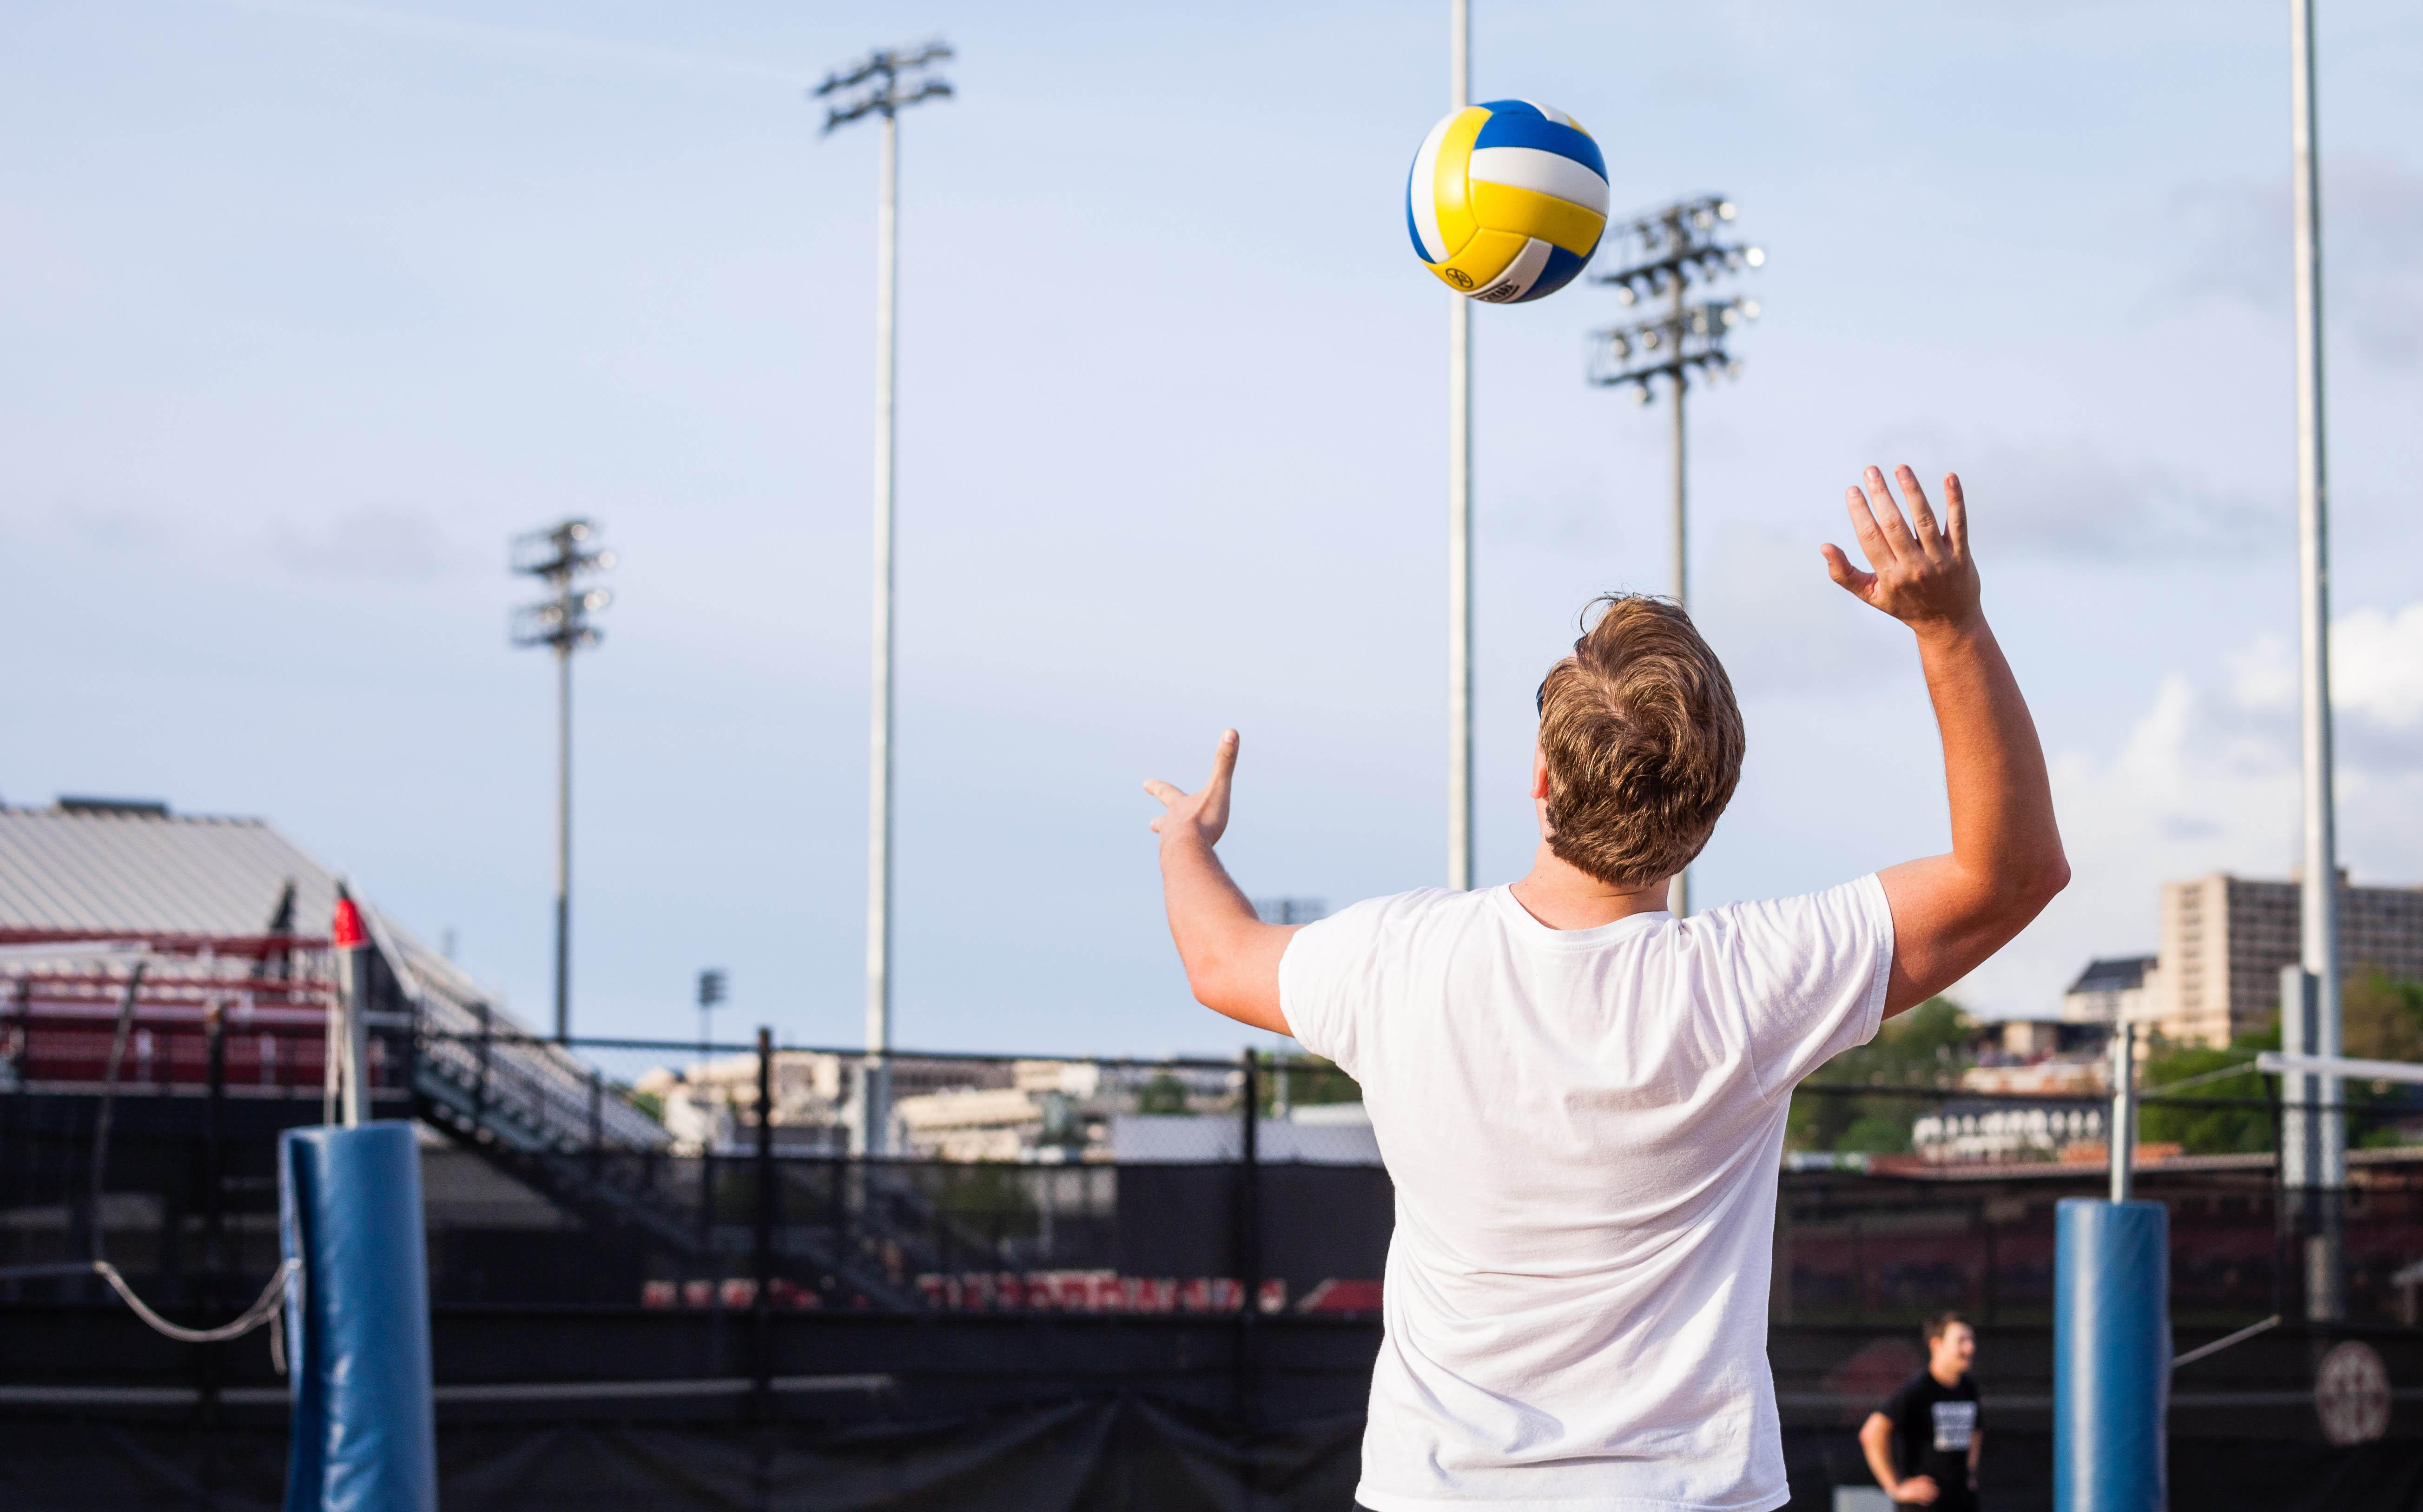 Sand Volleyball Registration is open from March 26 until April 4. Click the slide to register your team.